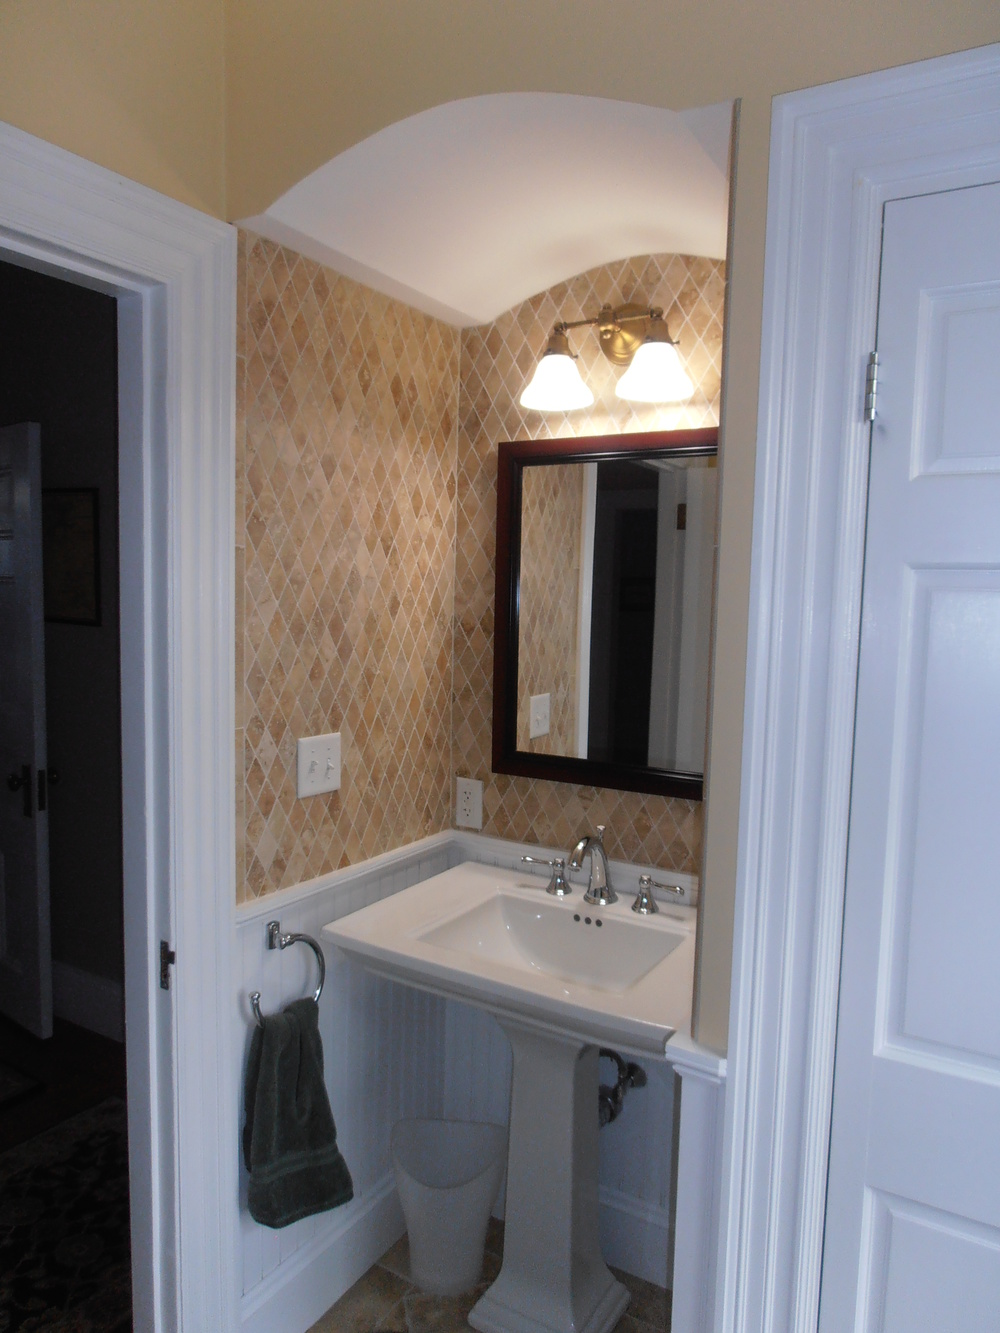 1 Pedestal Sink with Diamond Tiles and Arch.JPG